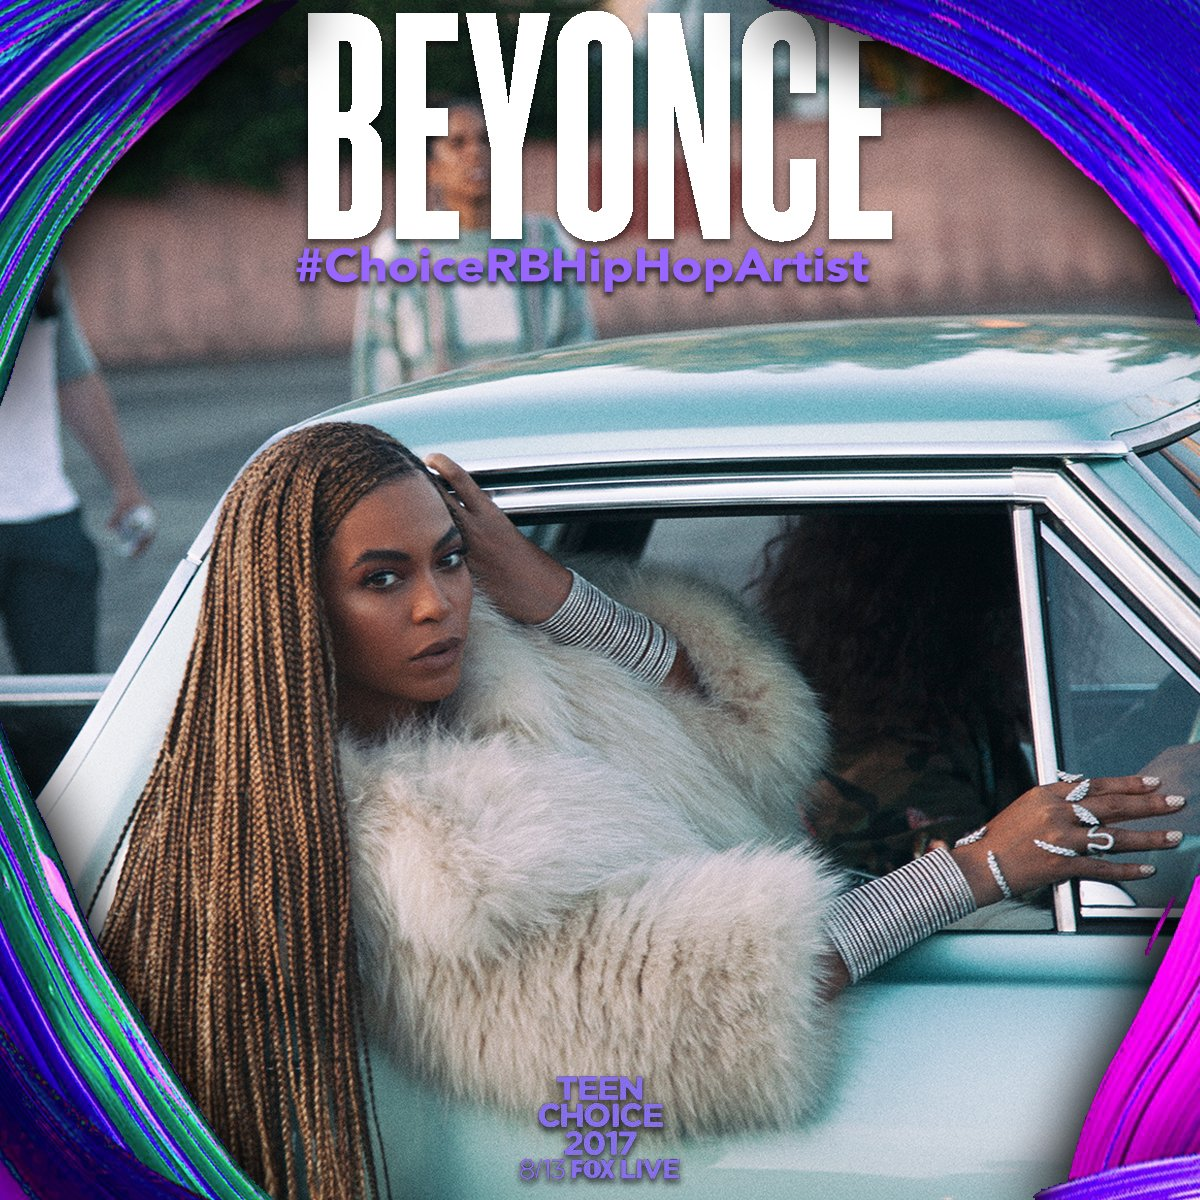 Don't forget to vote for @Beyonce! #TeenChoice #ChoiceRBHipHopArtist #ChoiceInstagrammer